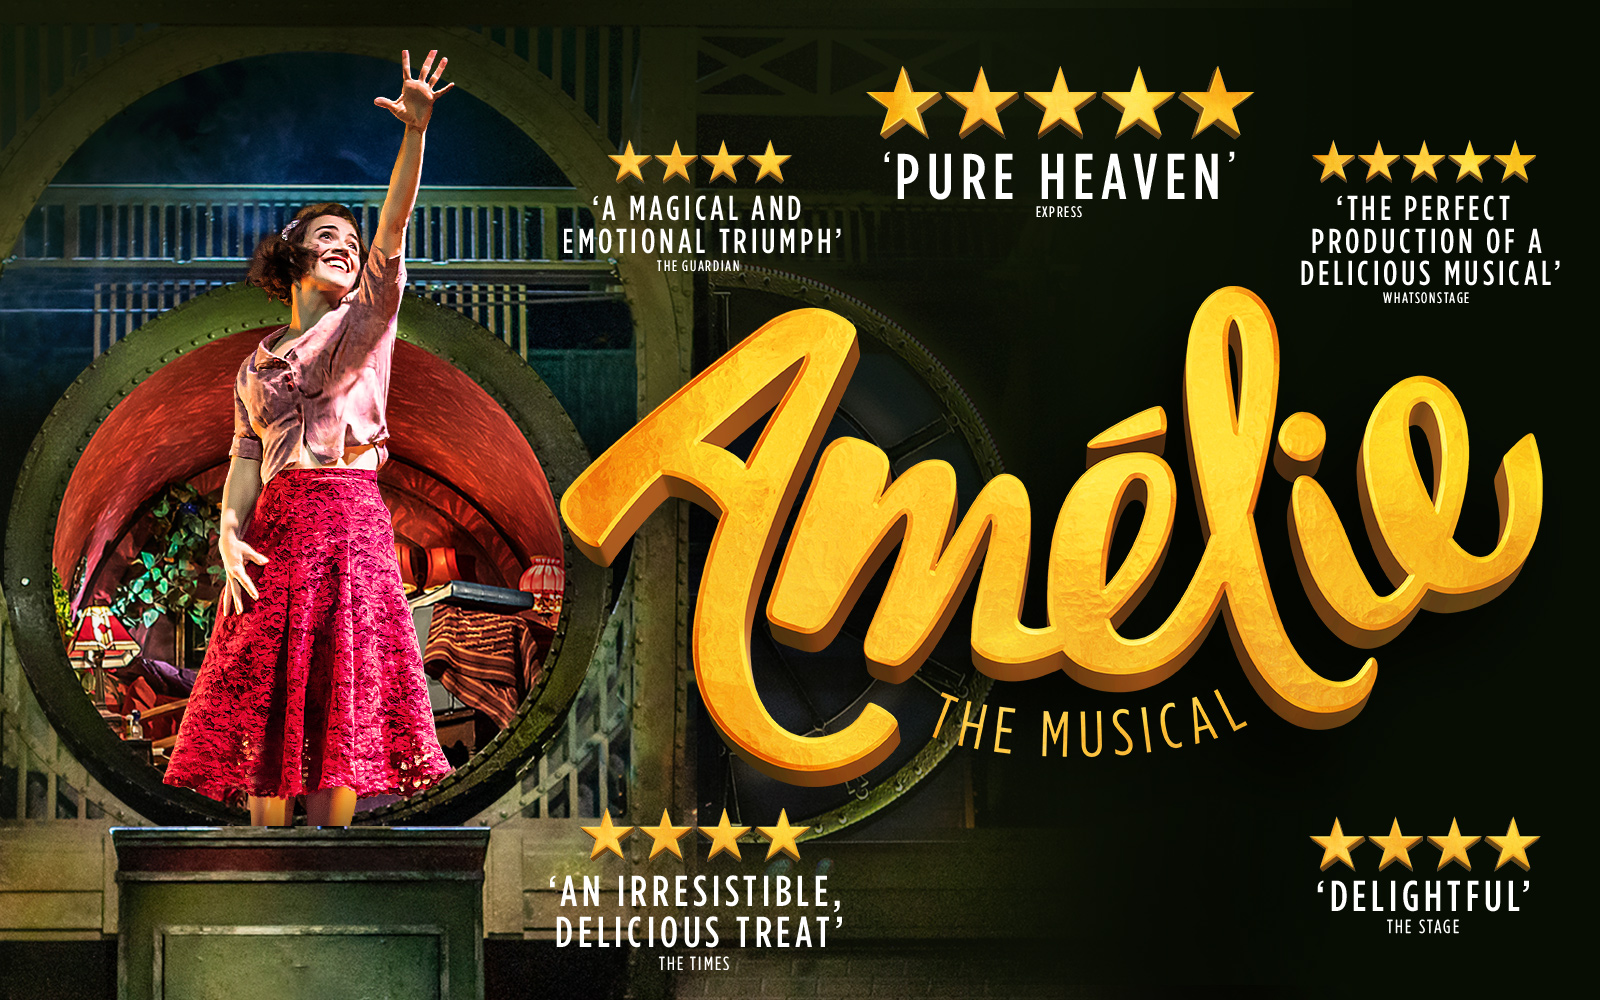 Amelie at The Other Palace promo image